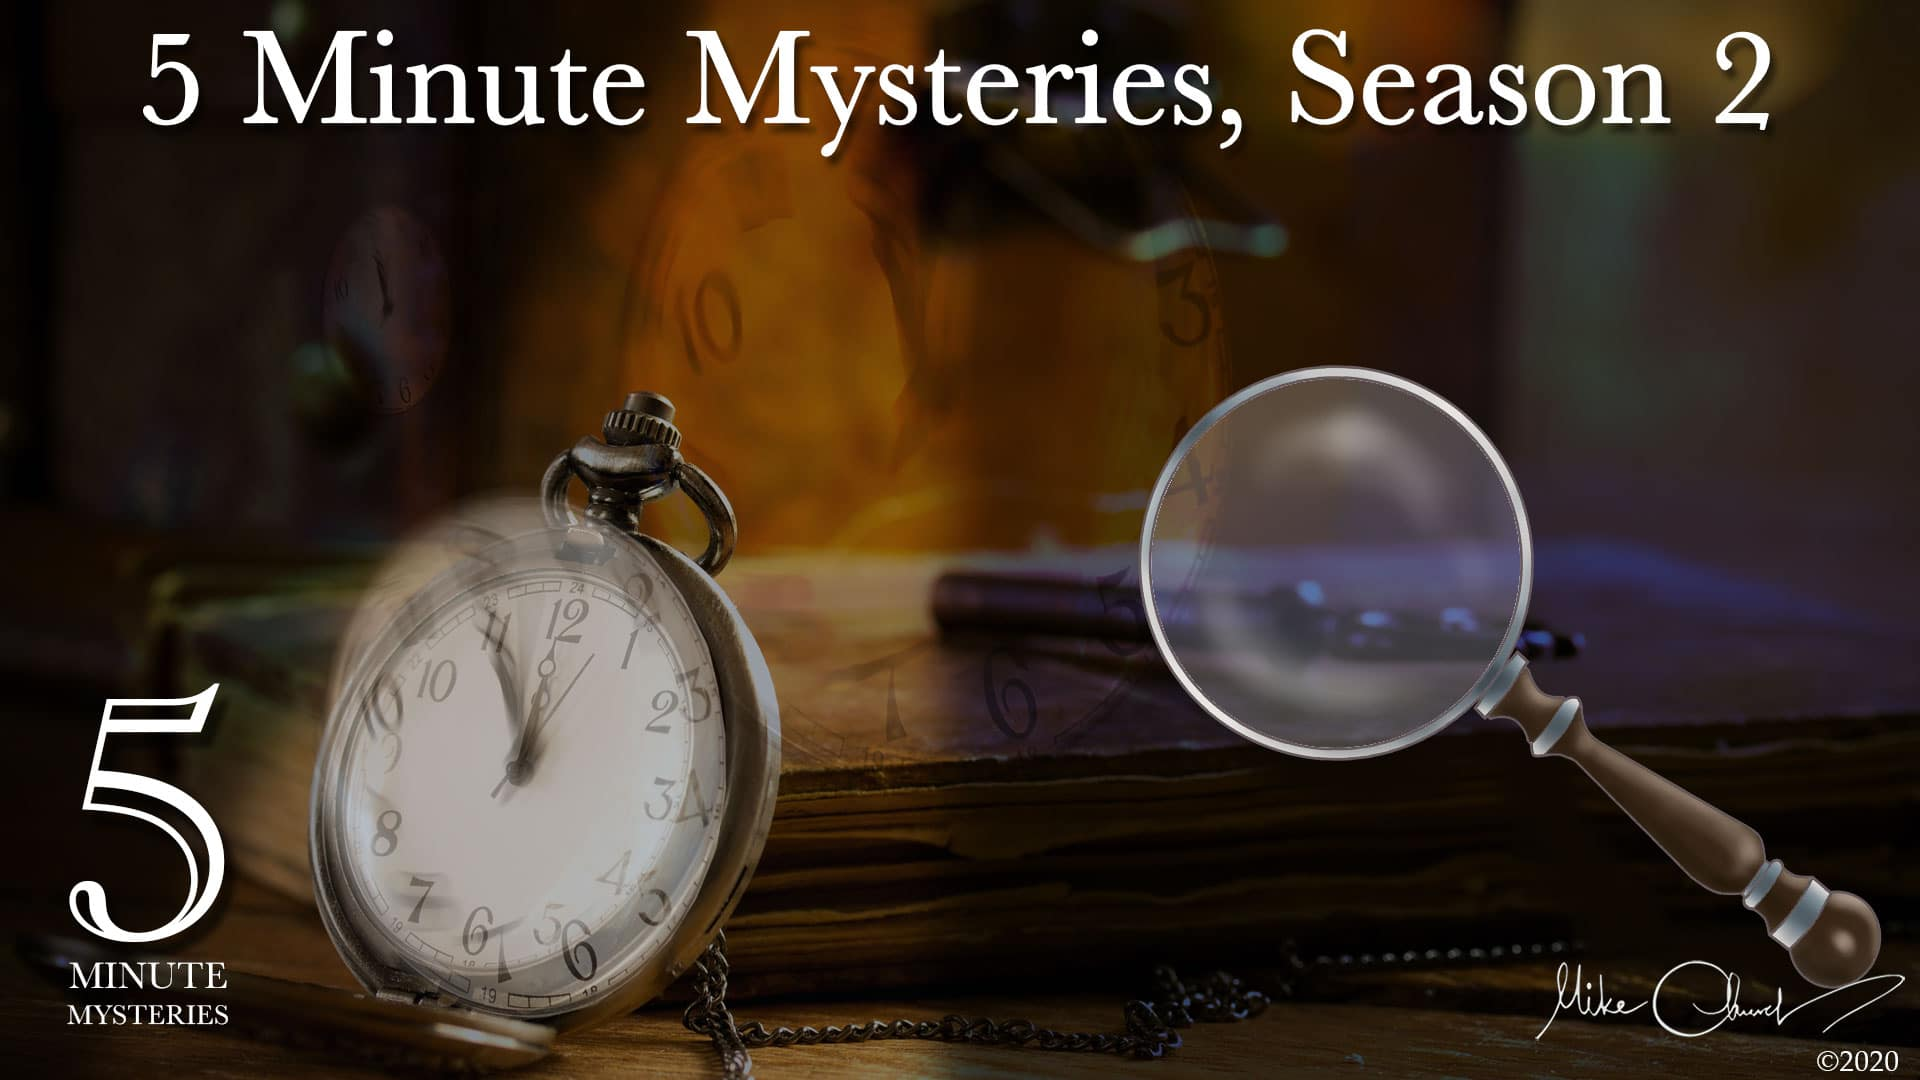 5 Minute Mysteries Season 2 Episode 7 - The Deadly Lion In Greg's Den